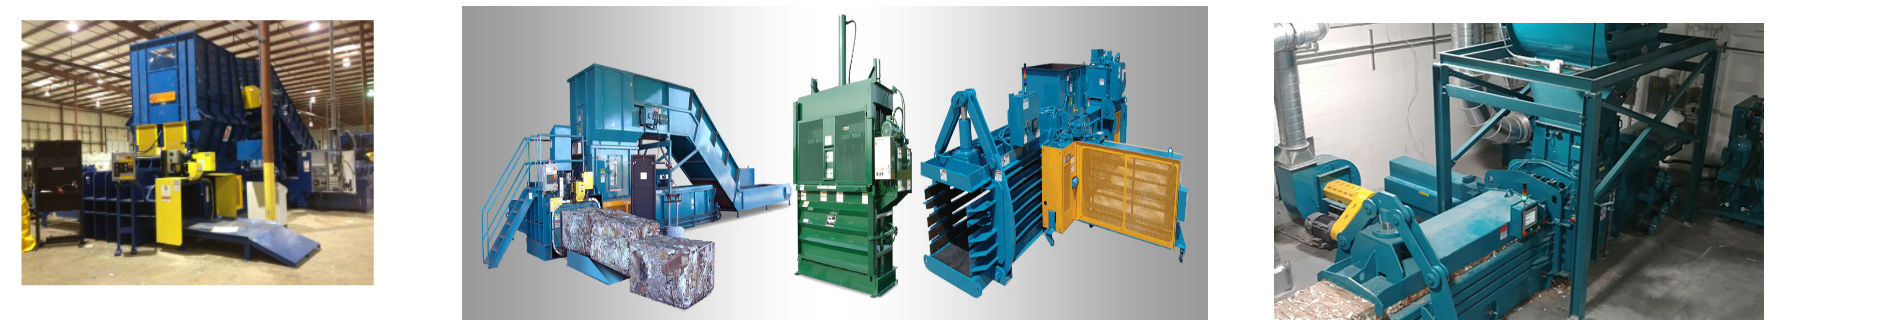 Recycling Equipment Manufacturers banner